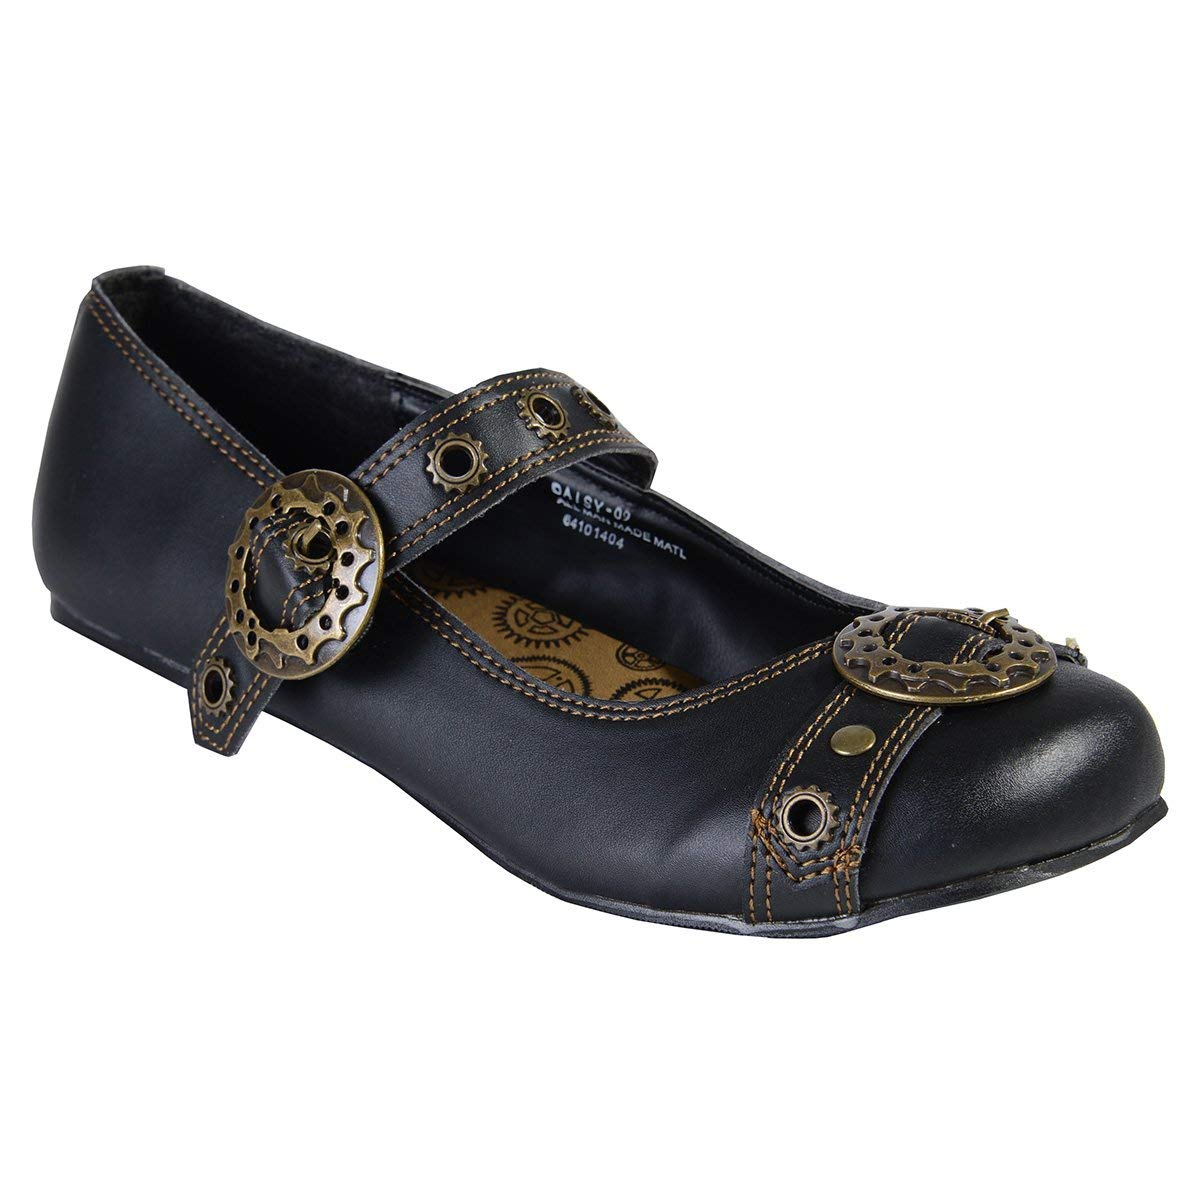 dc005356790 Get Quotations · Summitfashions Black Mary Jane Ballet Flats Steampunk  Gothic Style Buckles